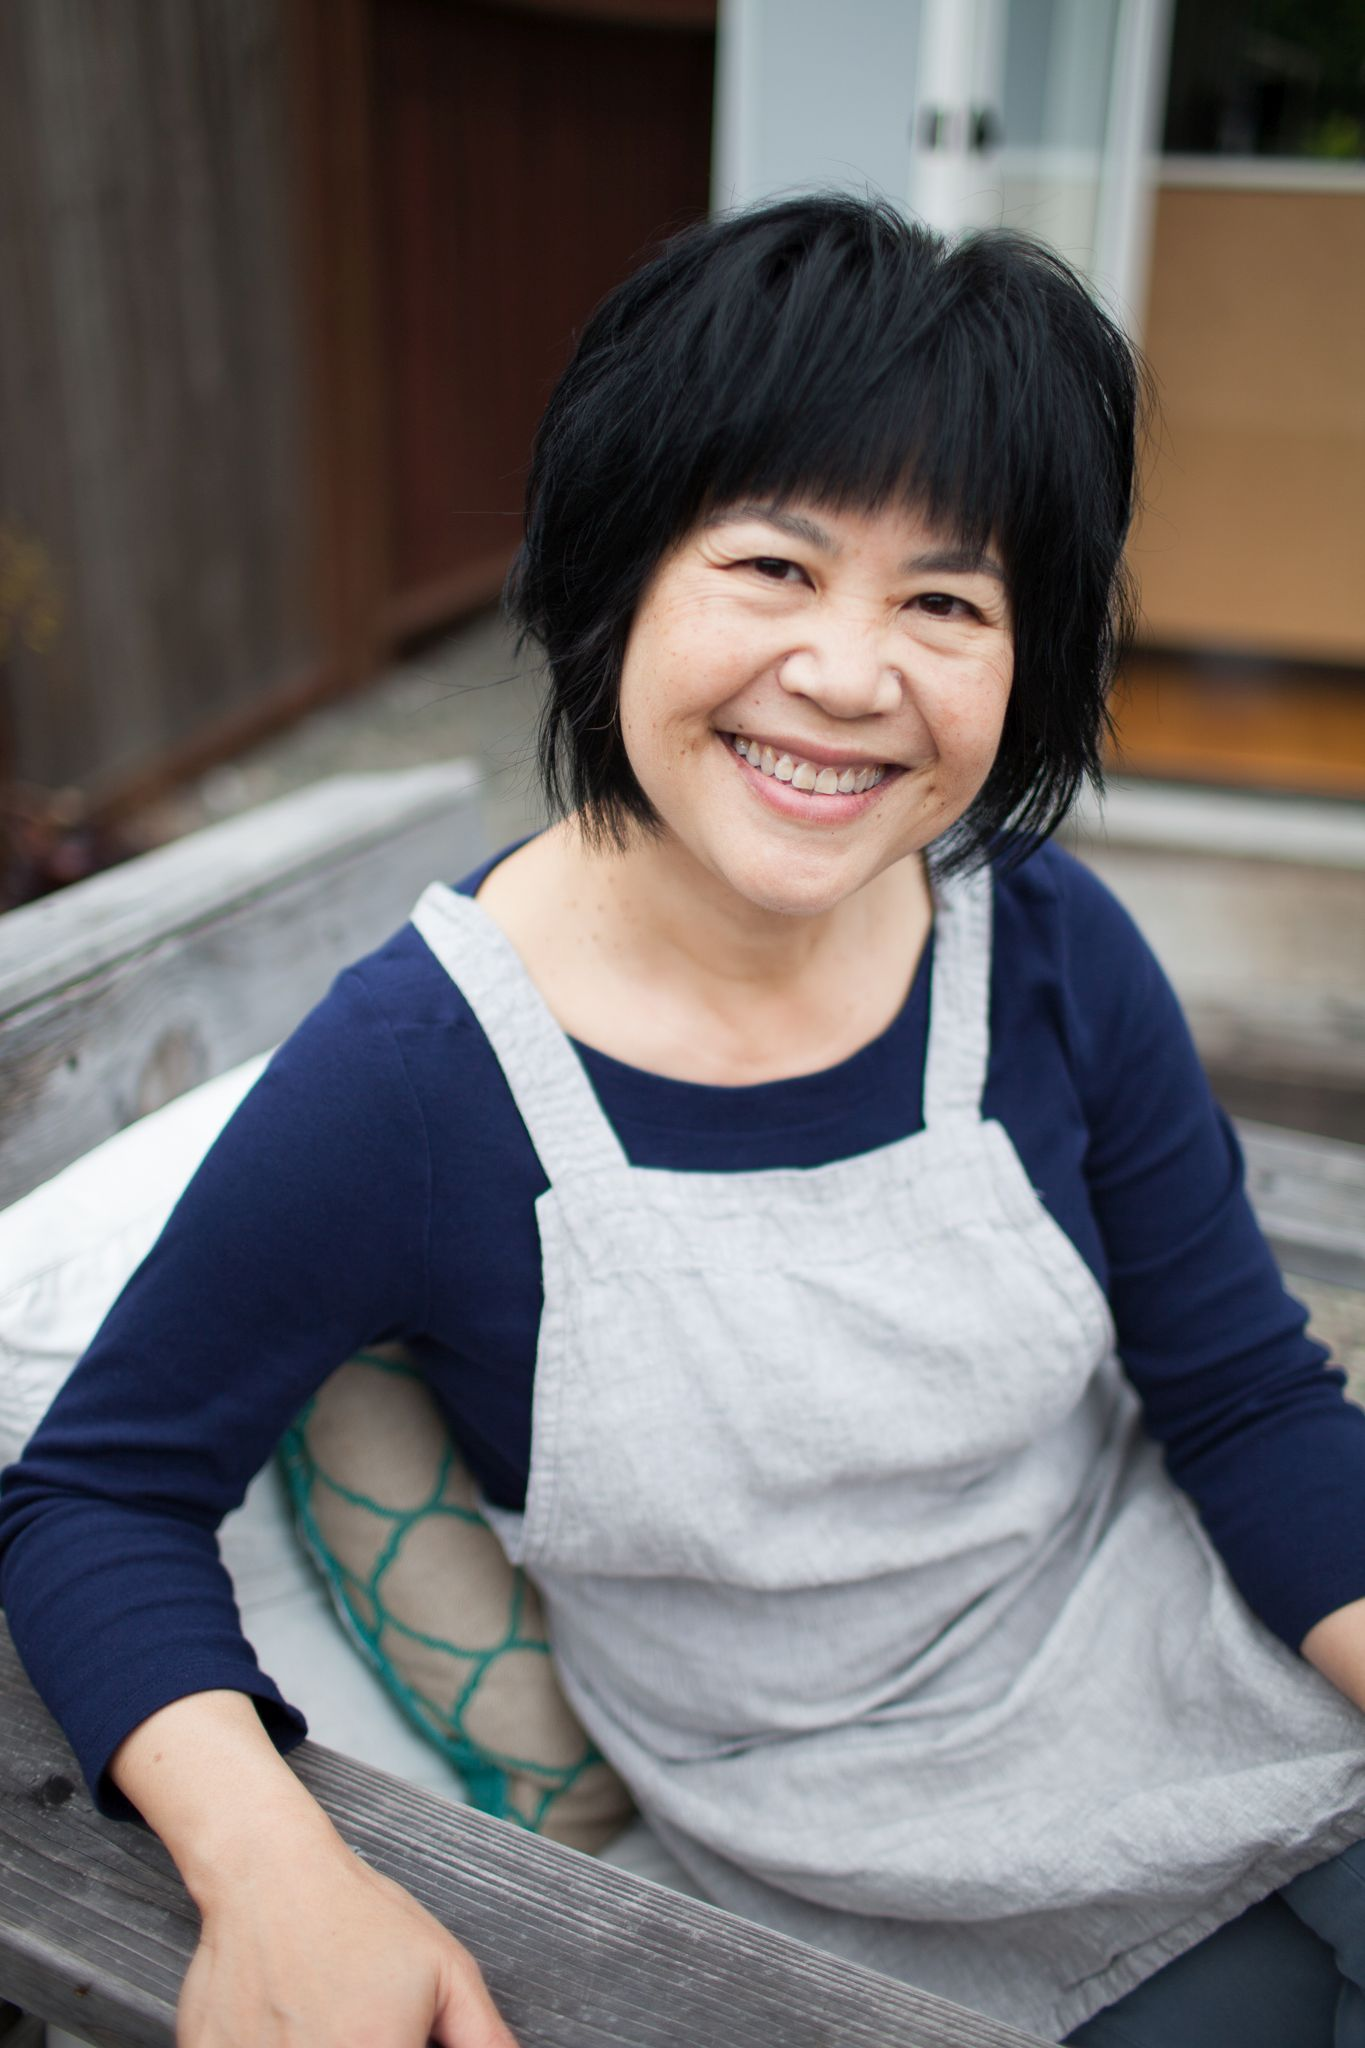 Chef Andrea Nguyễn (Photo: Common Thread Creative/Genevieve Pierson)